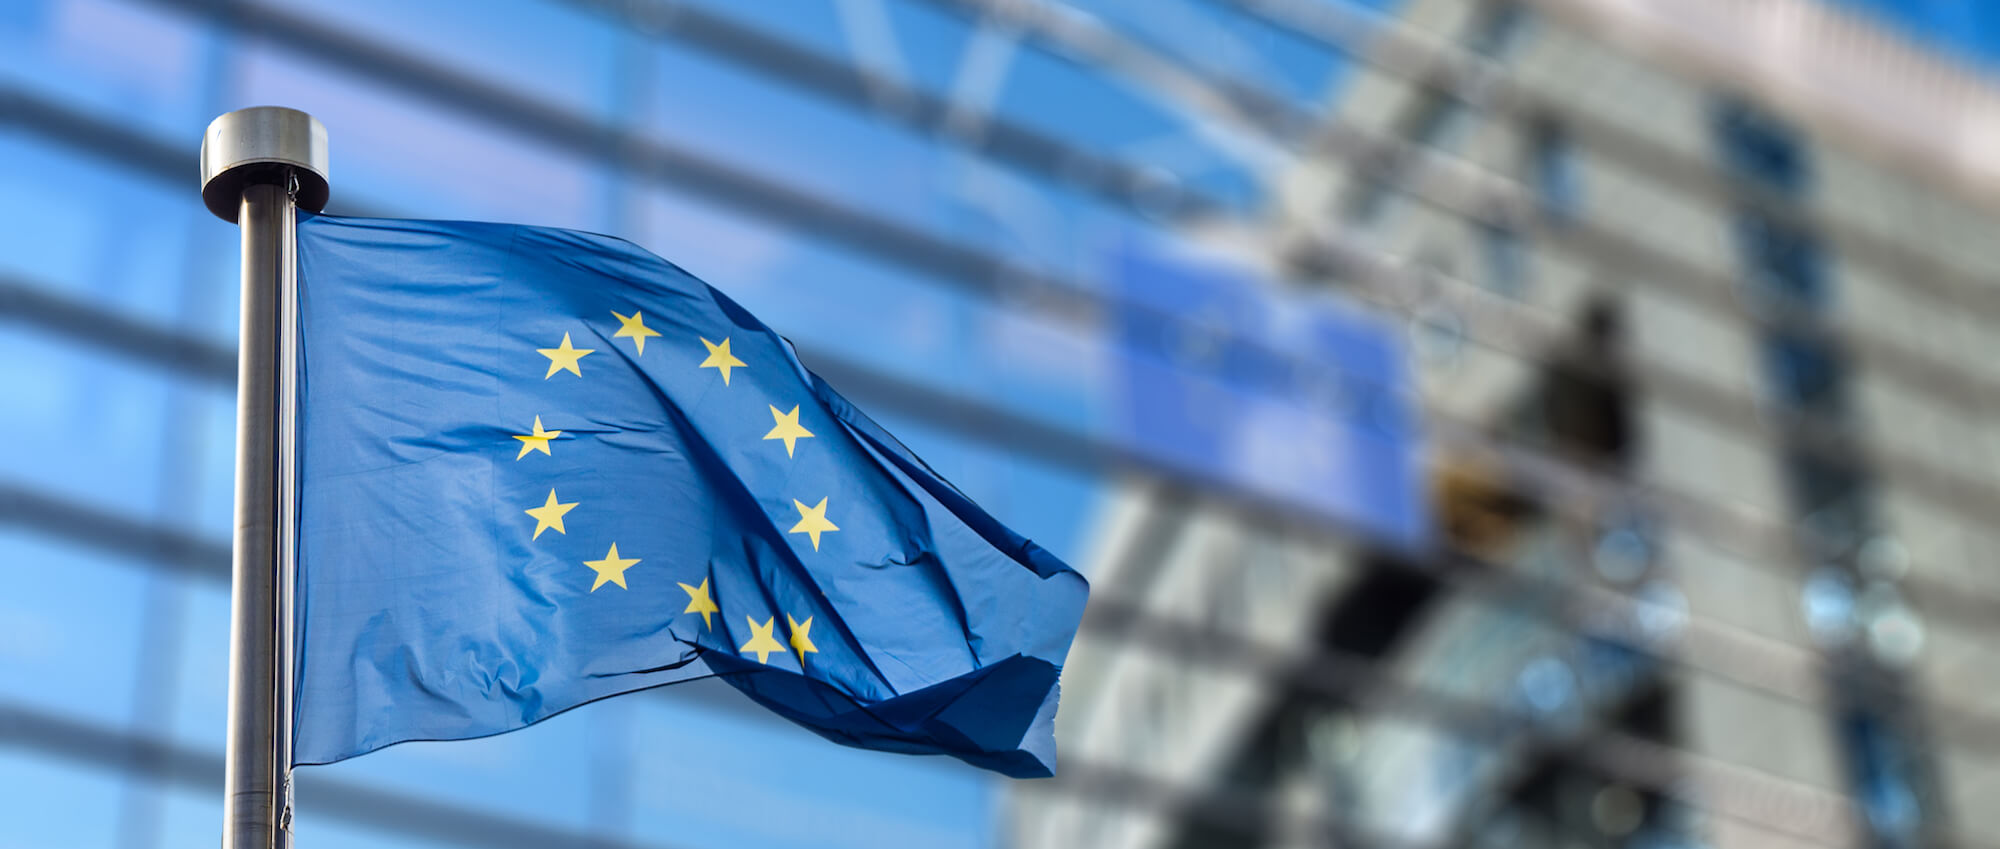 GDPR - The General Data Protection Regulation - How to implement